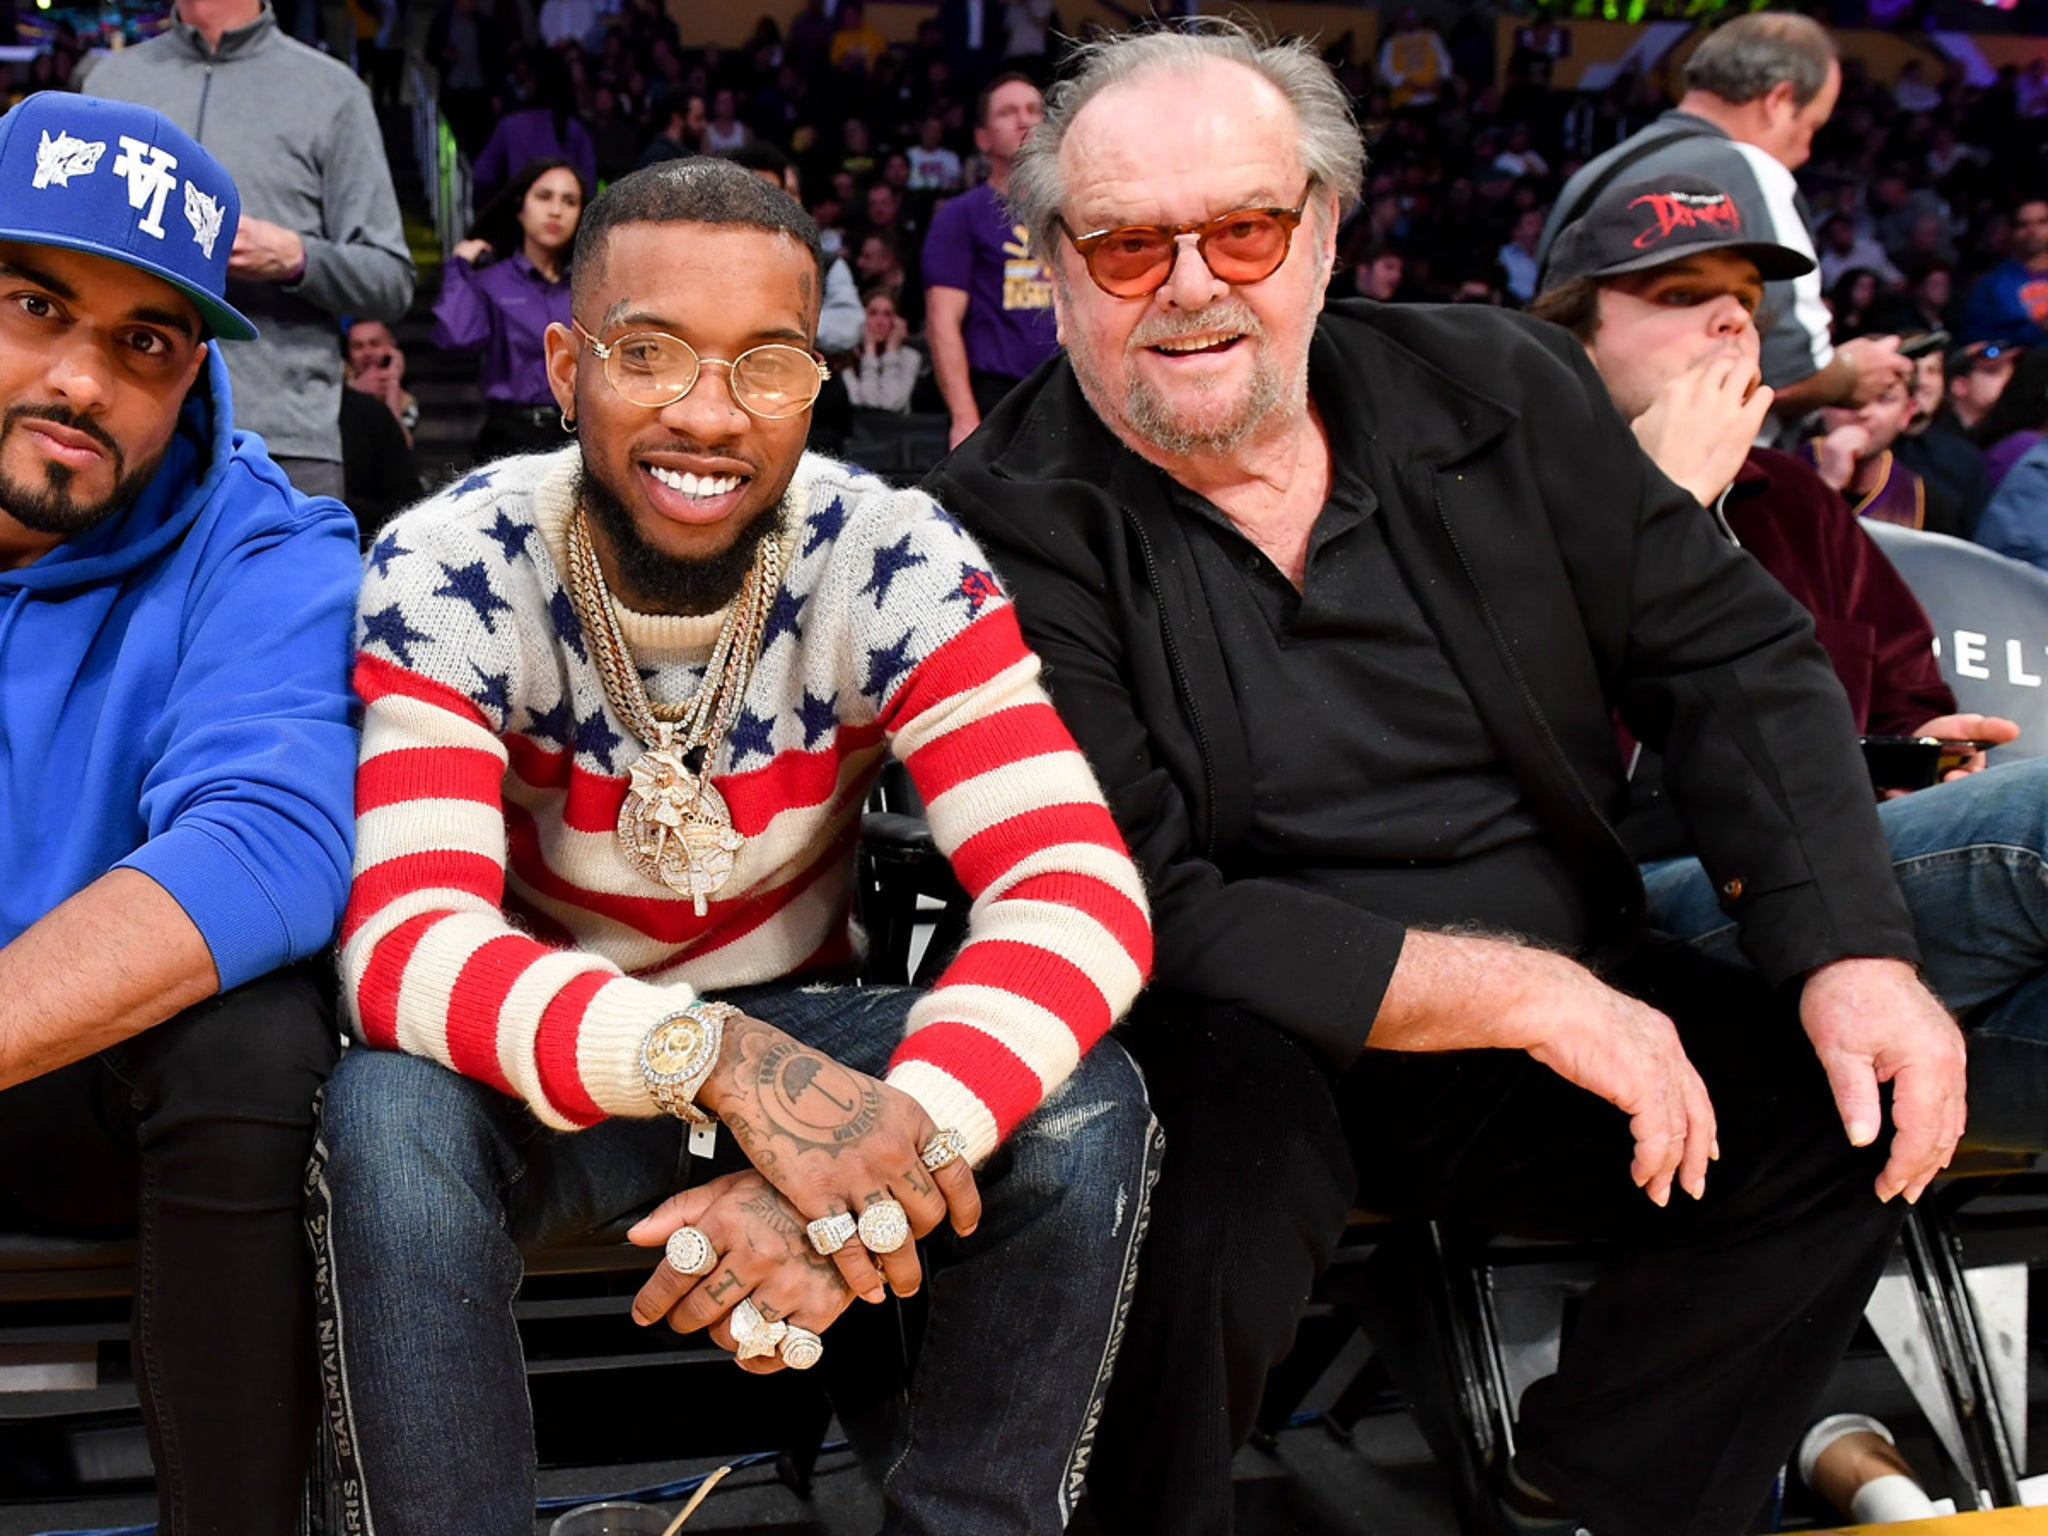 Jack Nicholson Bros Out With Tory Lanez At Lakers Game Jack nicholson and his youngest son, ray nicholson, stepped out for a rare public appearance saturday evening in the hamptons. jack nicholson bros out with tory lanez